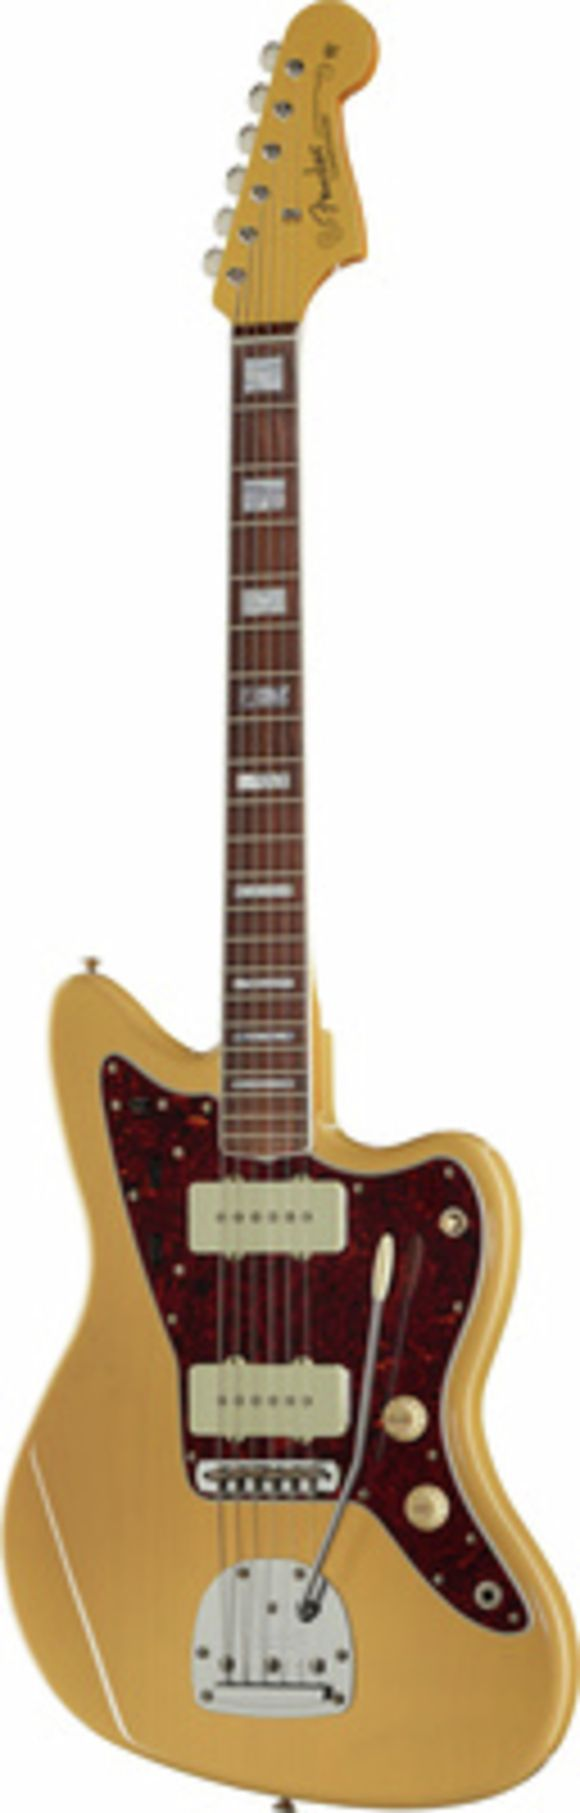 60TH Jazzmaster PF VBL Fender